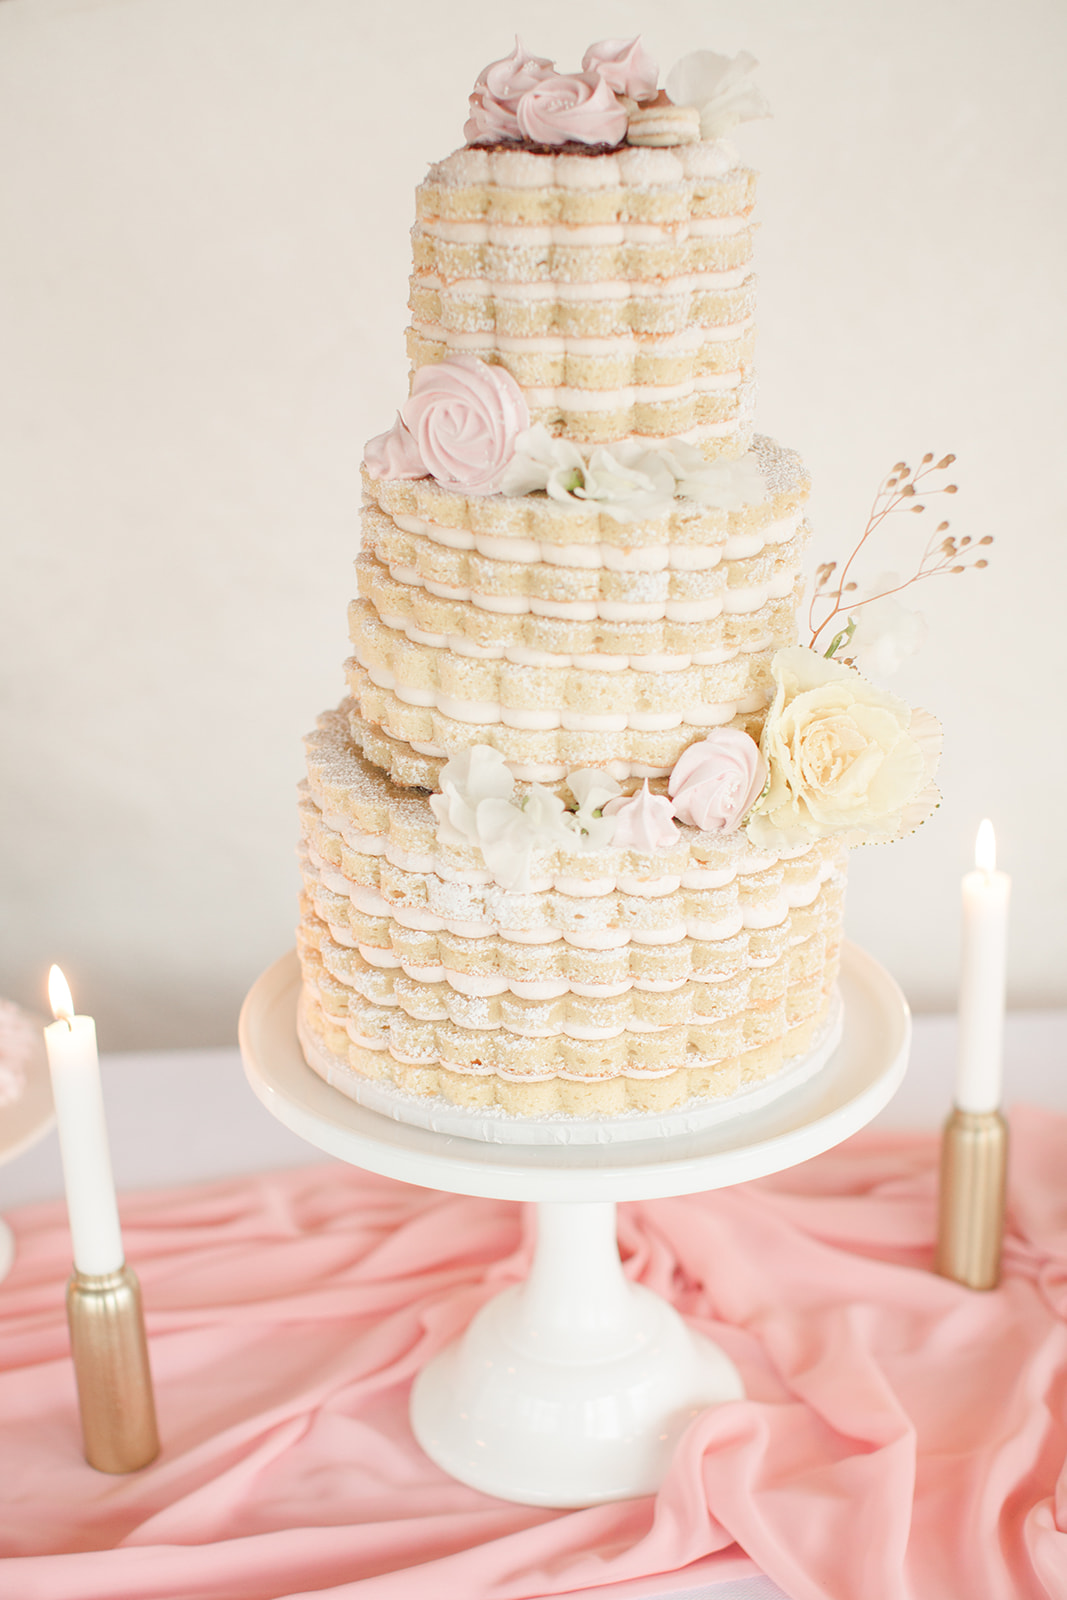 Romantic fine art wedding cake, inspired by the poise and movement of ballet, by Next Door Desserts. Calligraphy and Stationery by Caitlin O'Bryant Design. Photo: Kelby Maria Photography. Planning: Peachy Keen Coordination